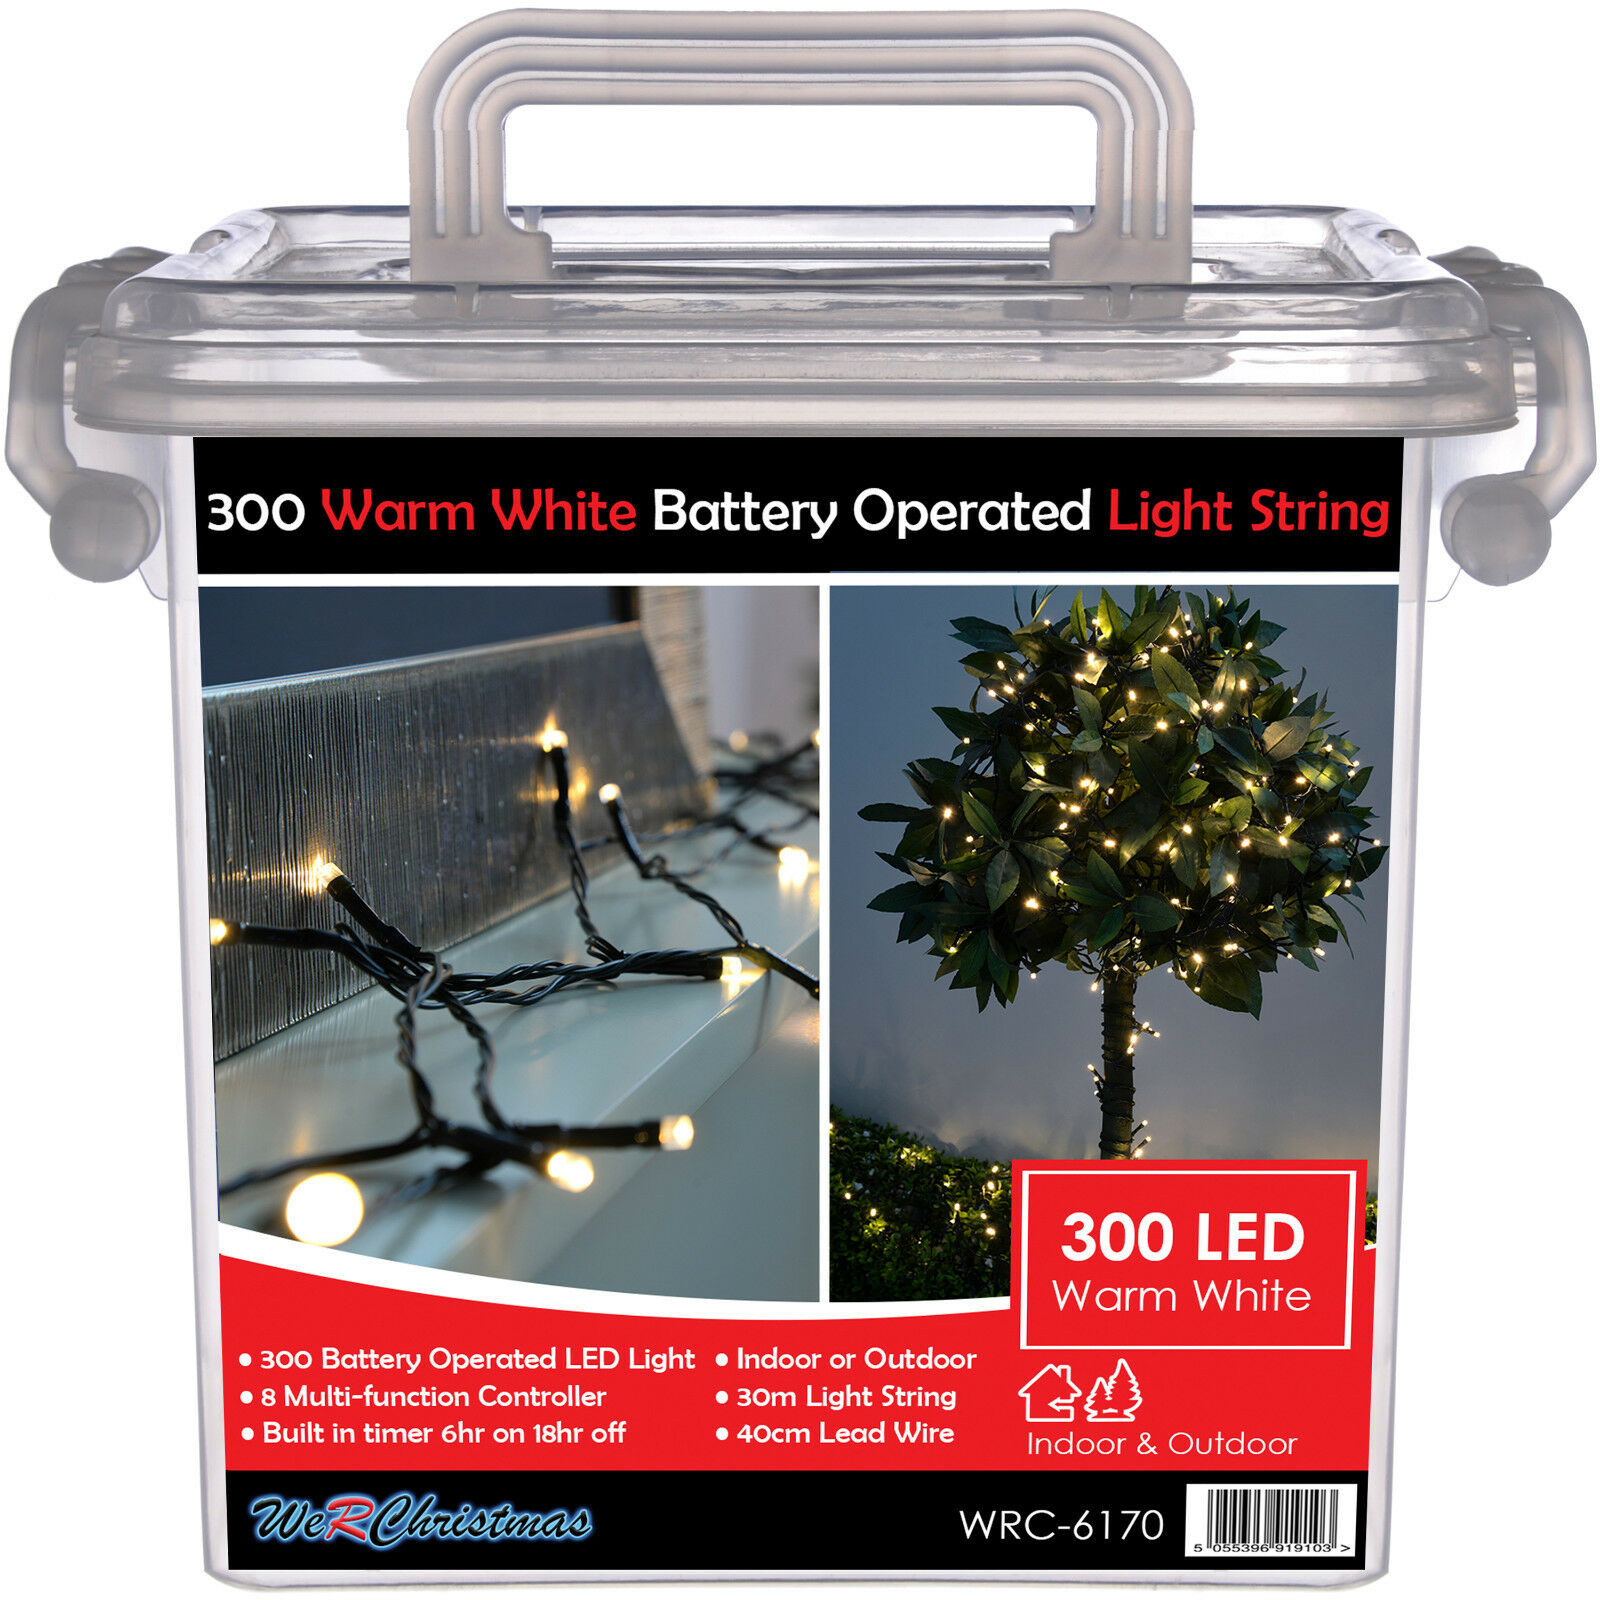 Outdoor Battery Operated 300 Multi-Function LED Lights with Timer 30m Warm White